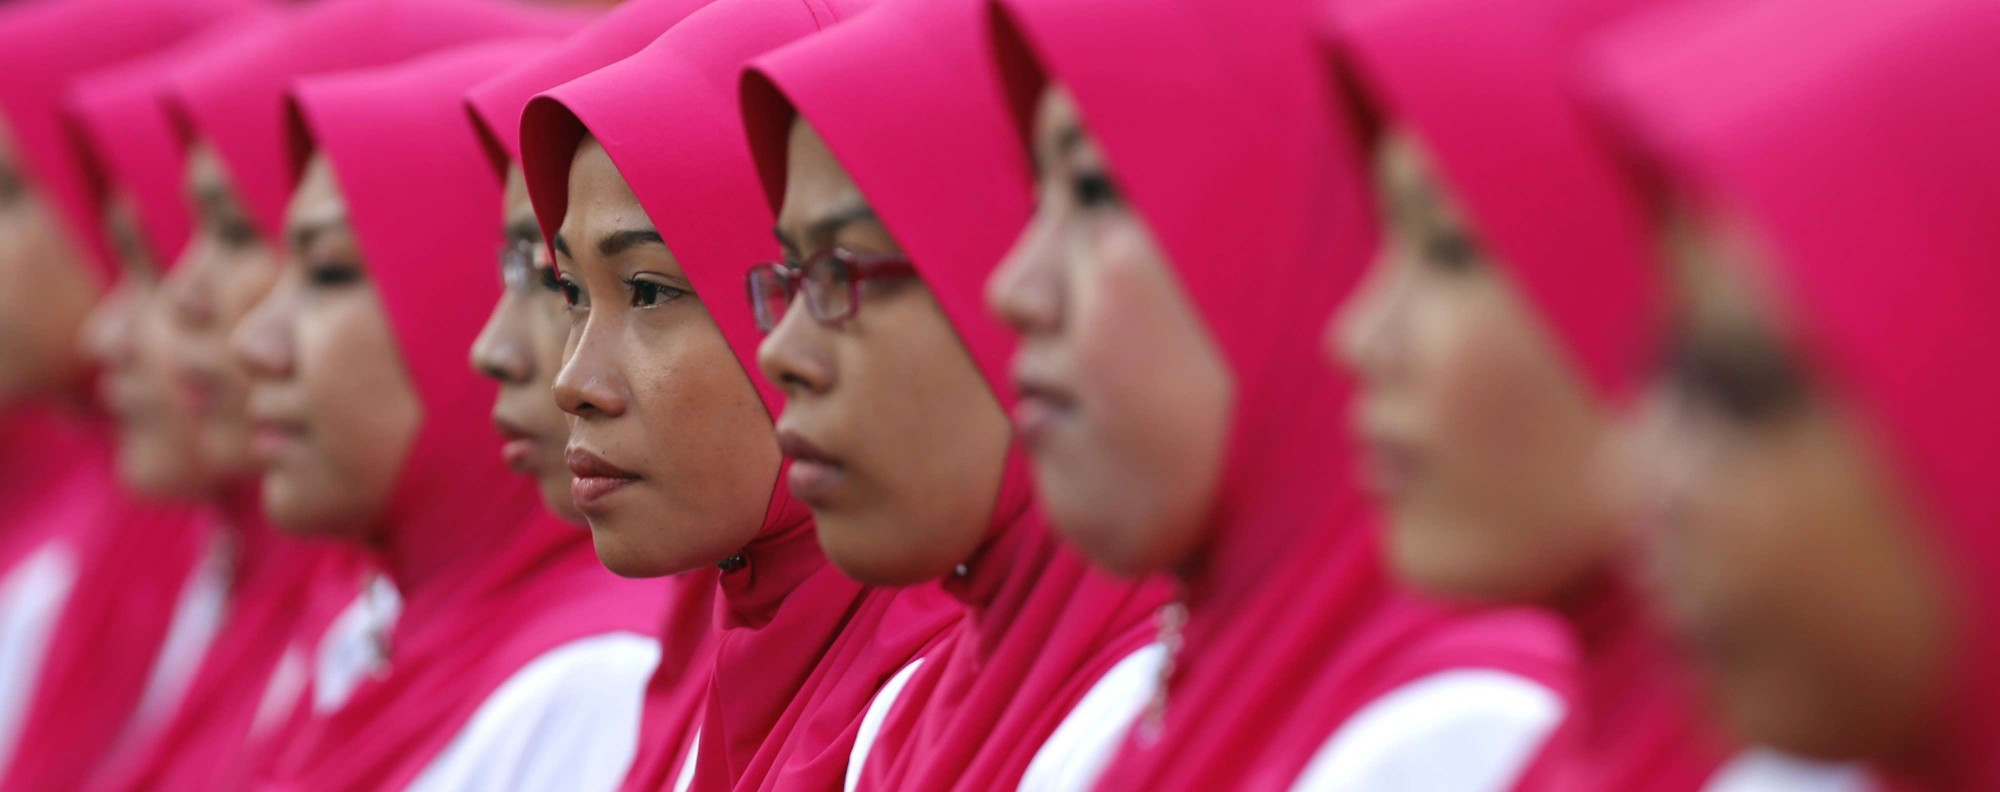 The annual UMNO assembly in Kuala Lumpur.